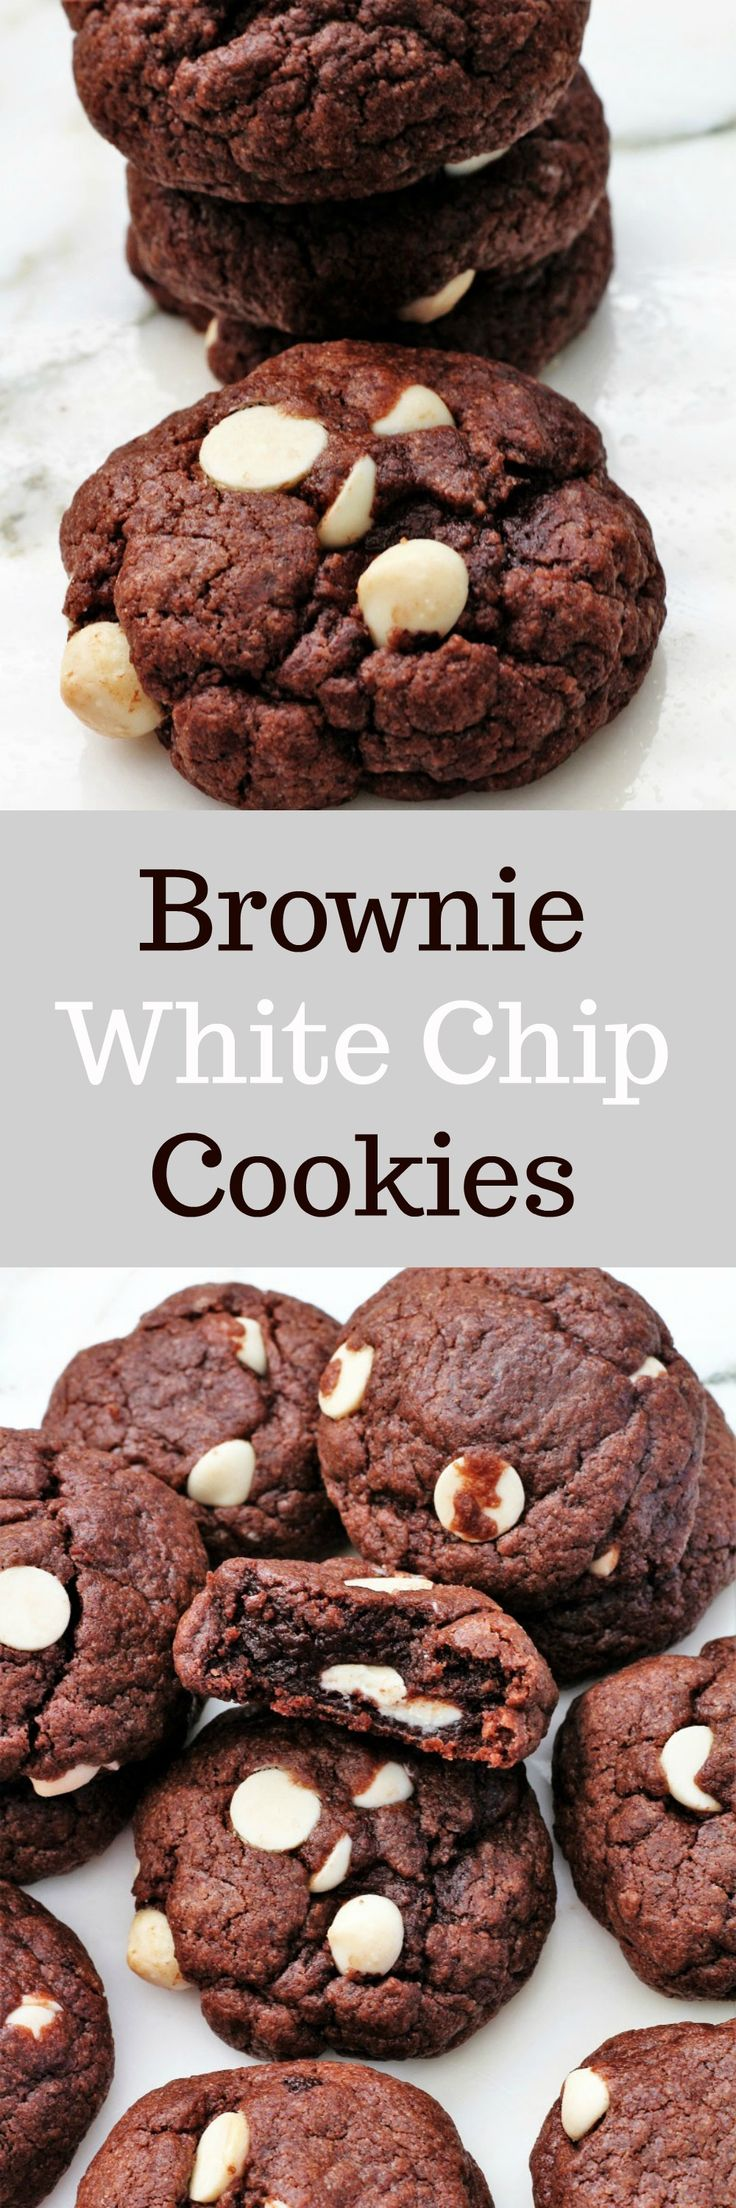 Brownie White Chip Cookies, Recipe Treasures